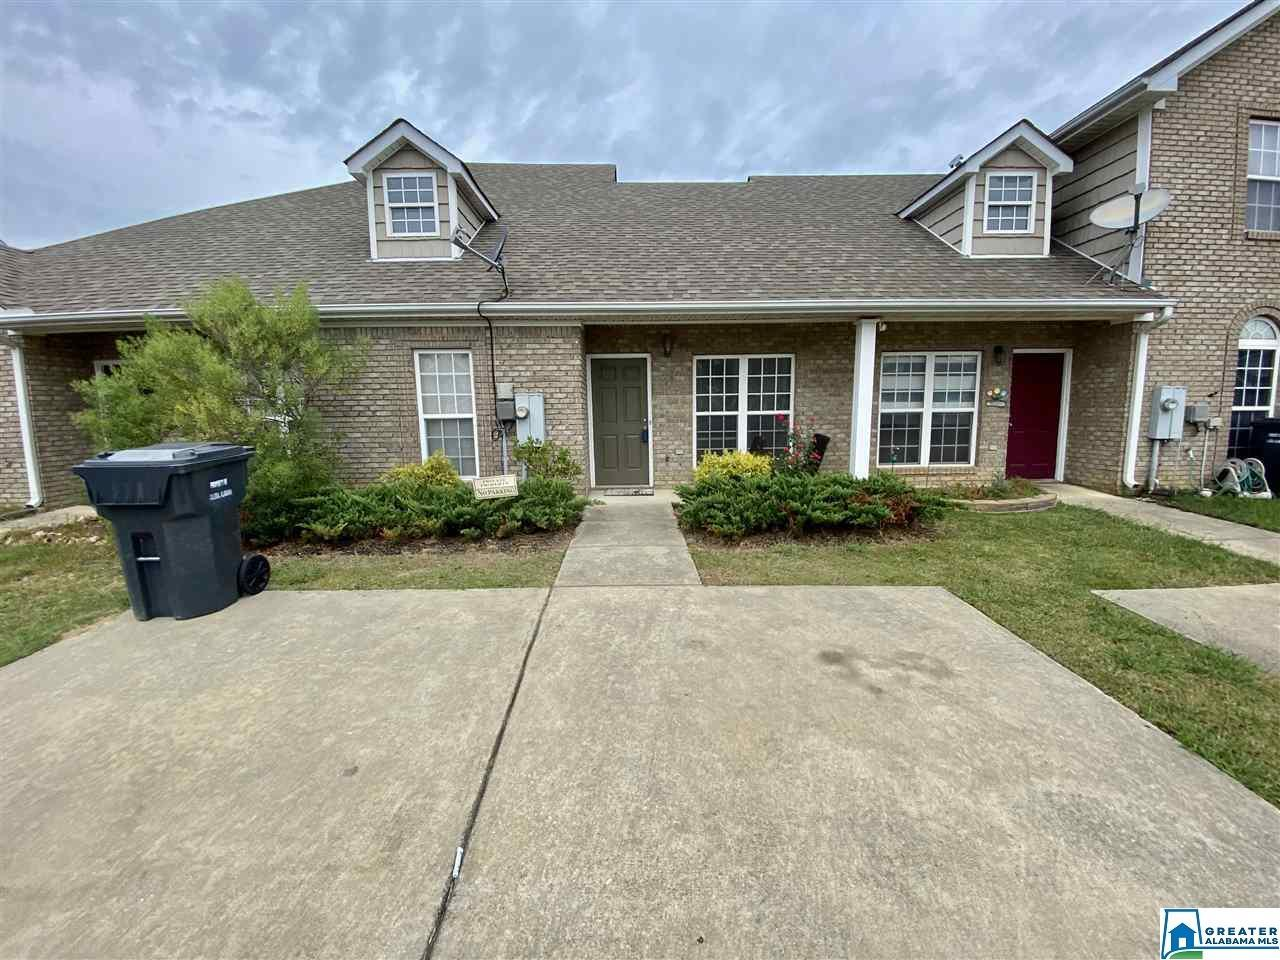 164 WATERFORD LAKE DR, Calera, AL 35040 - MLS#: 896080